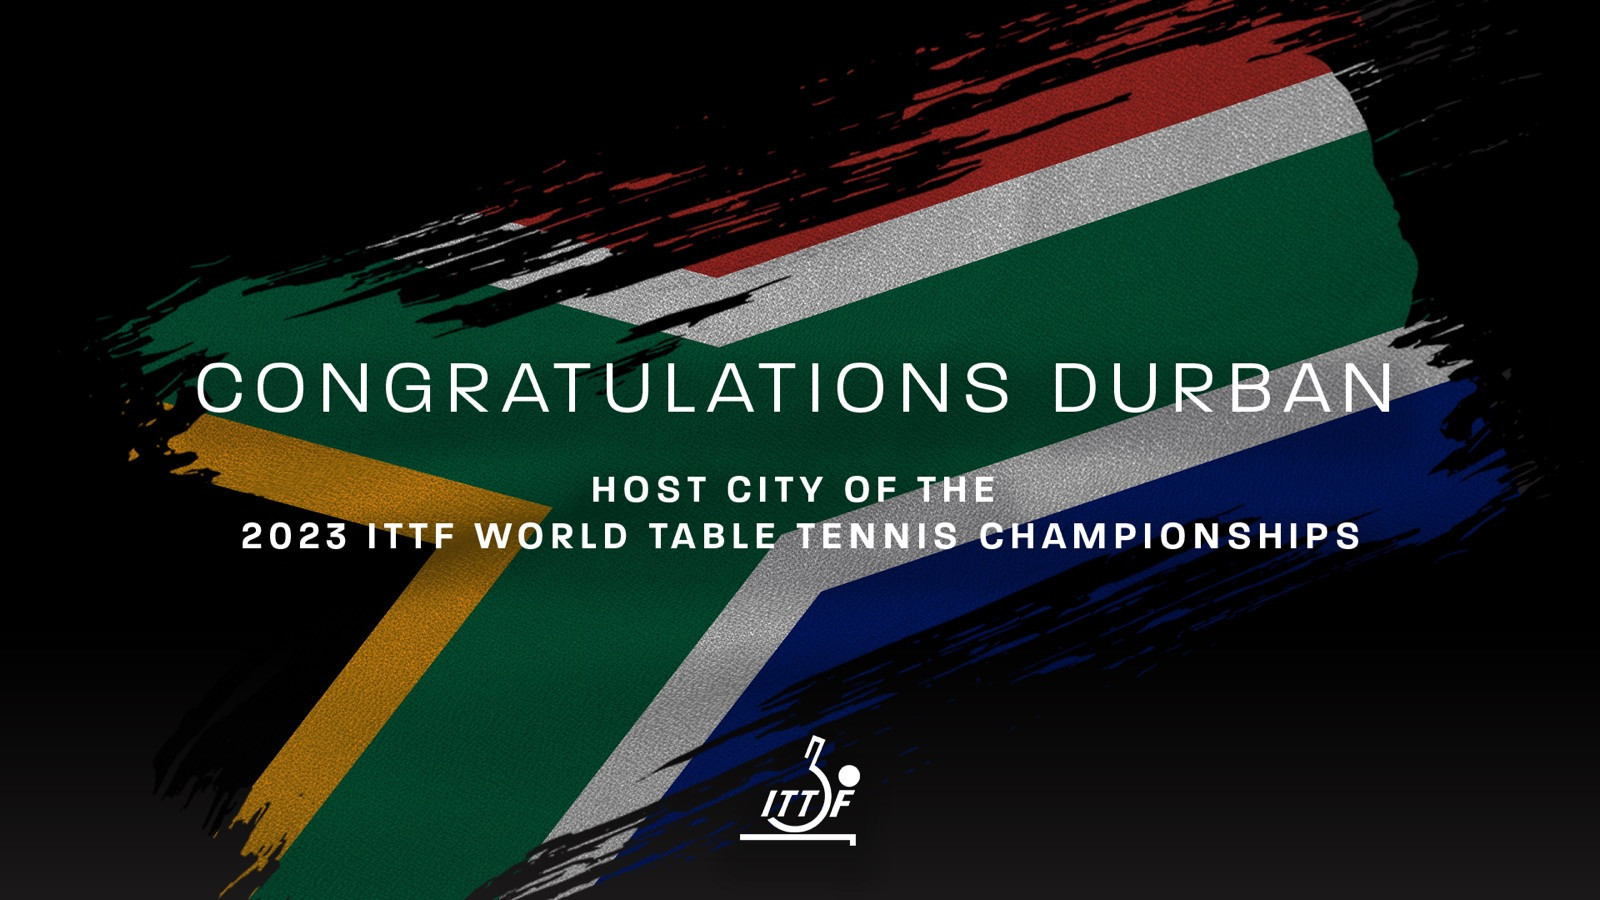 South Africa to host World Table Tennis Championships for first time after Durban beats Düsseldorf in 2023 race